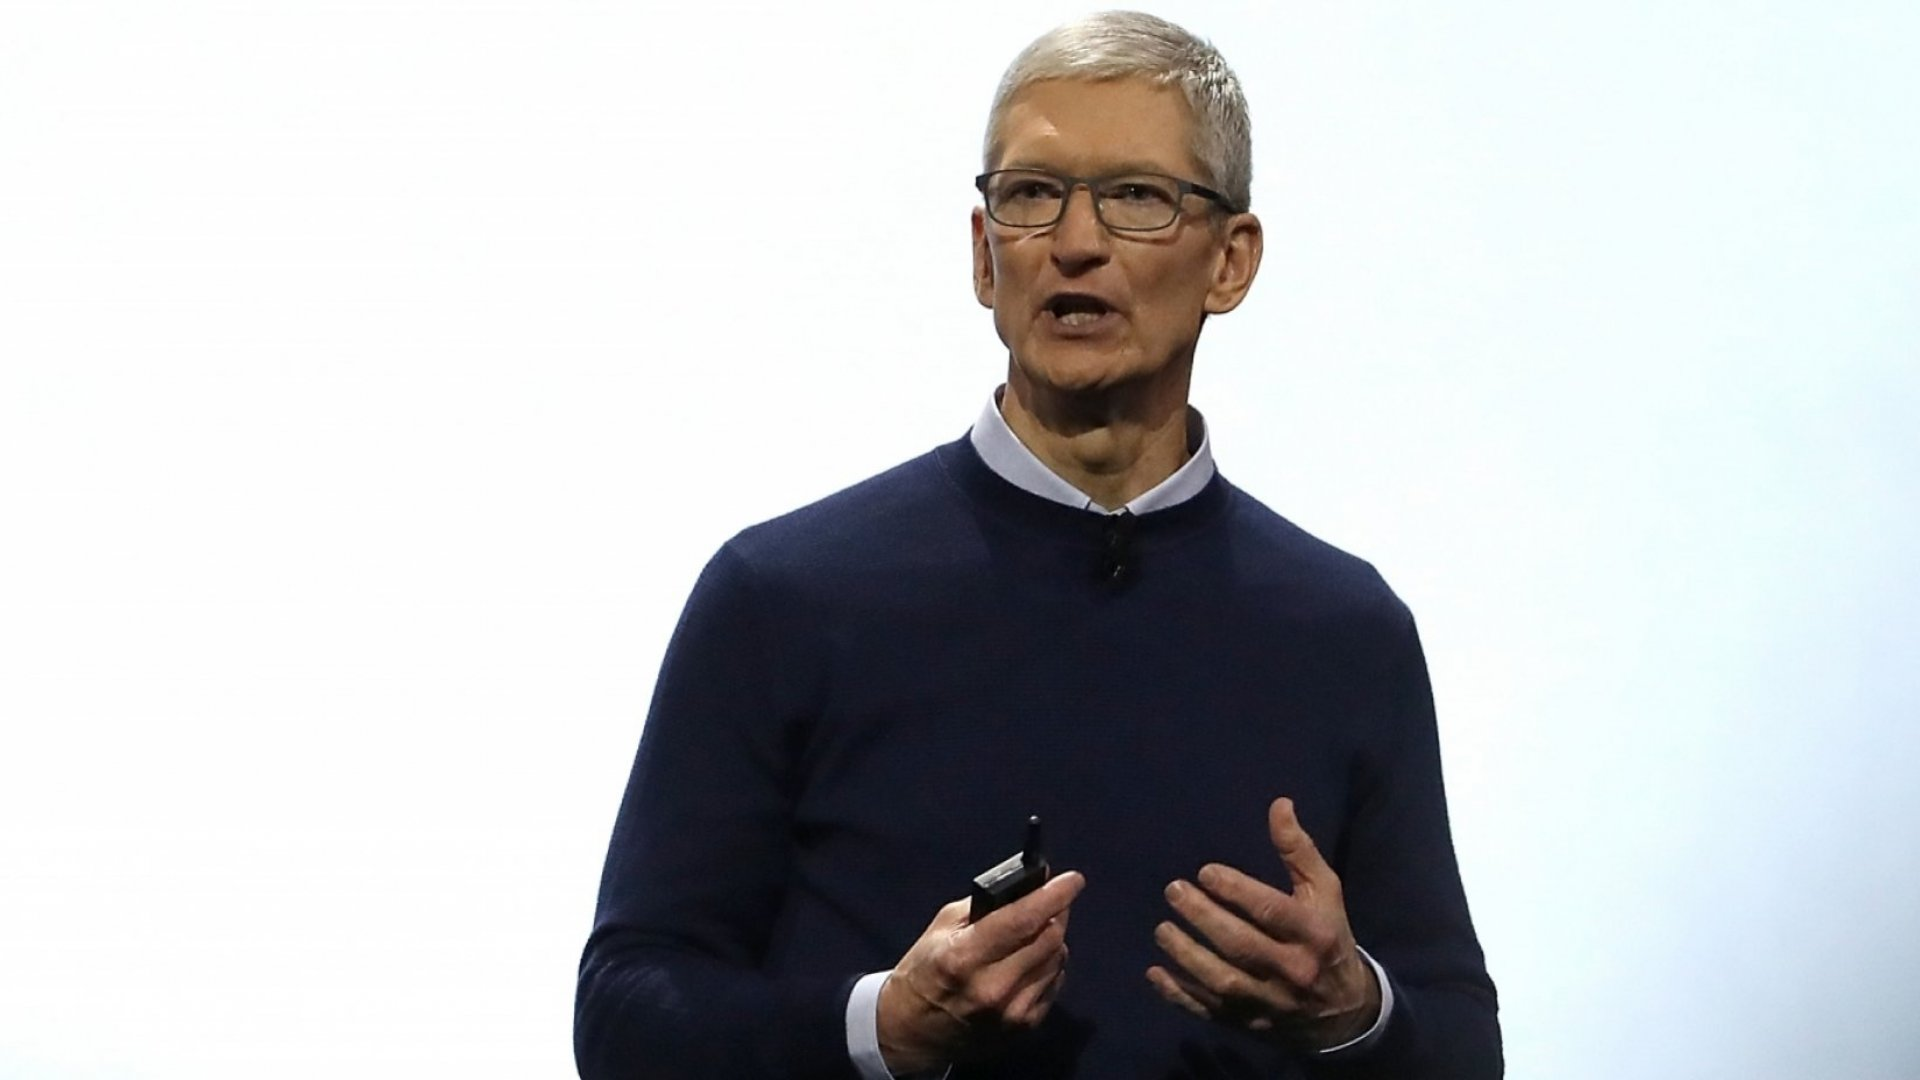 Tim Cook Confirms Apple Is Working on Self-Driving Cars